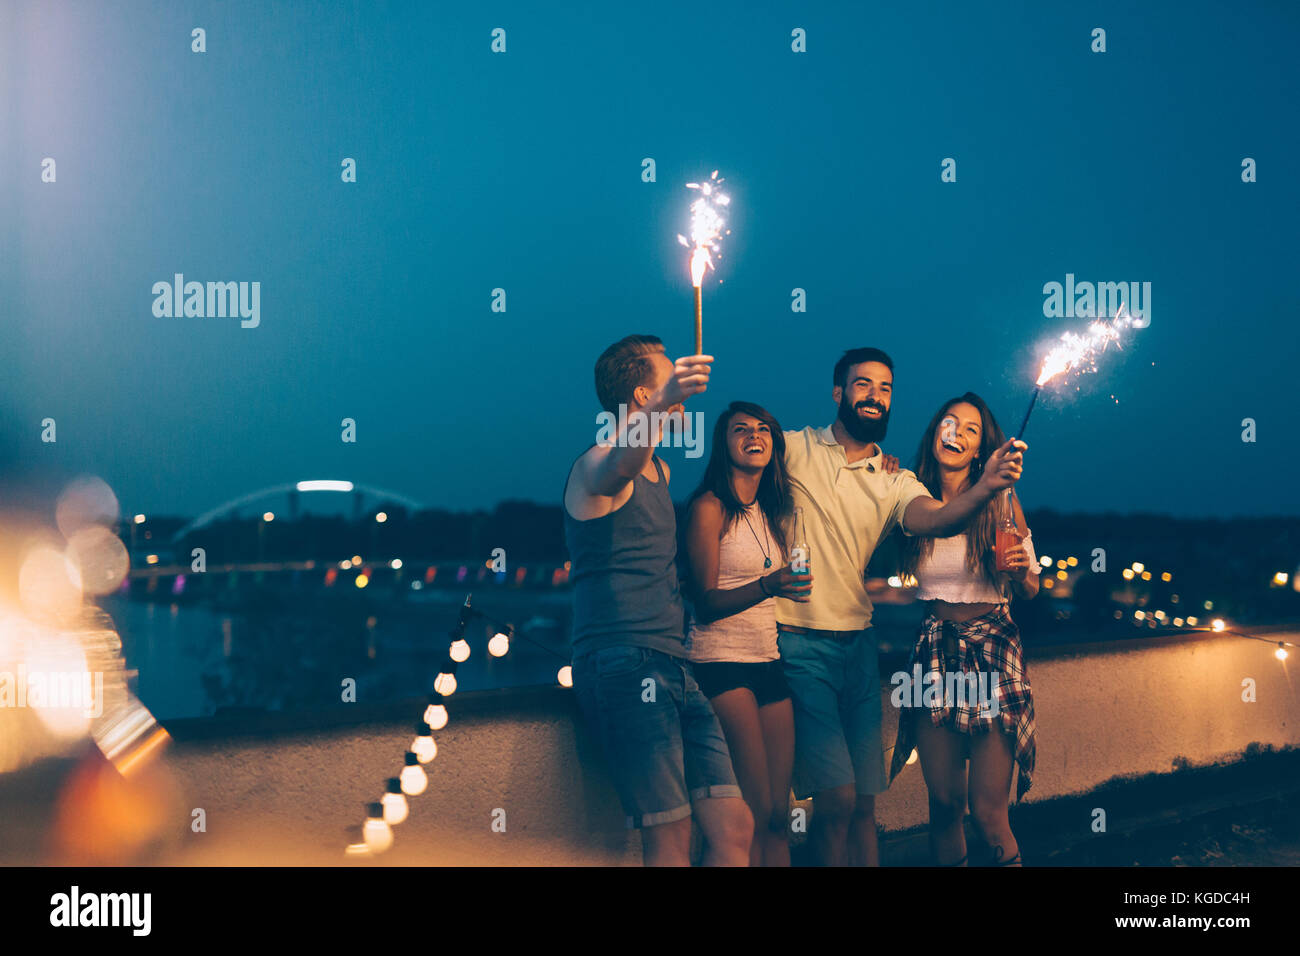 Groupe d'happy friends celebrating at rooftop Photo Stock